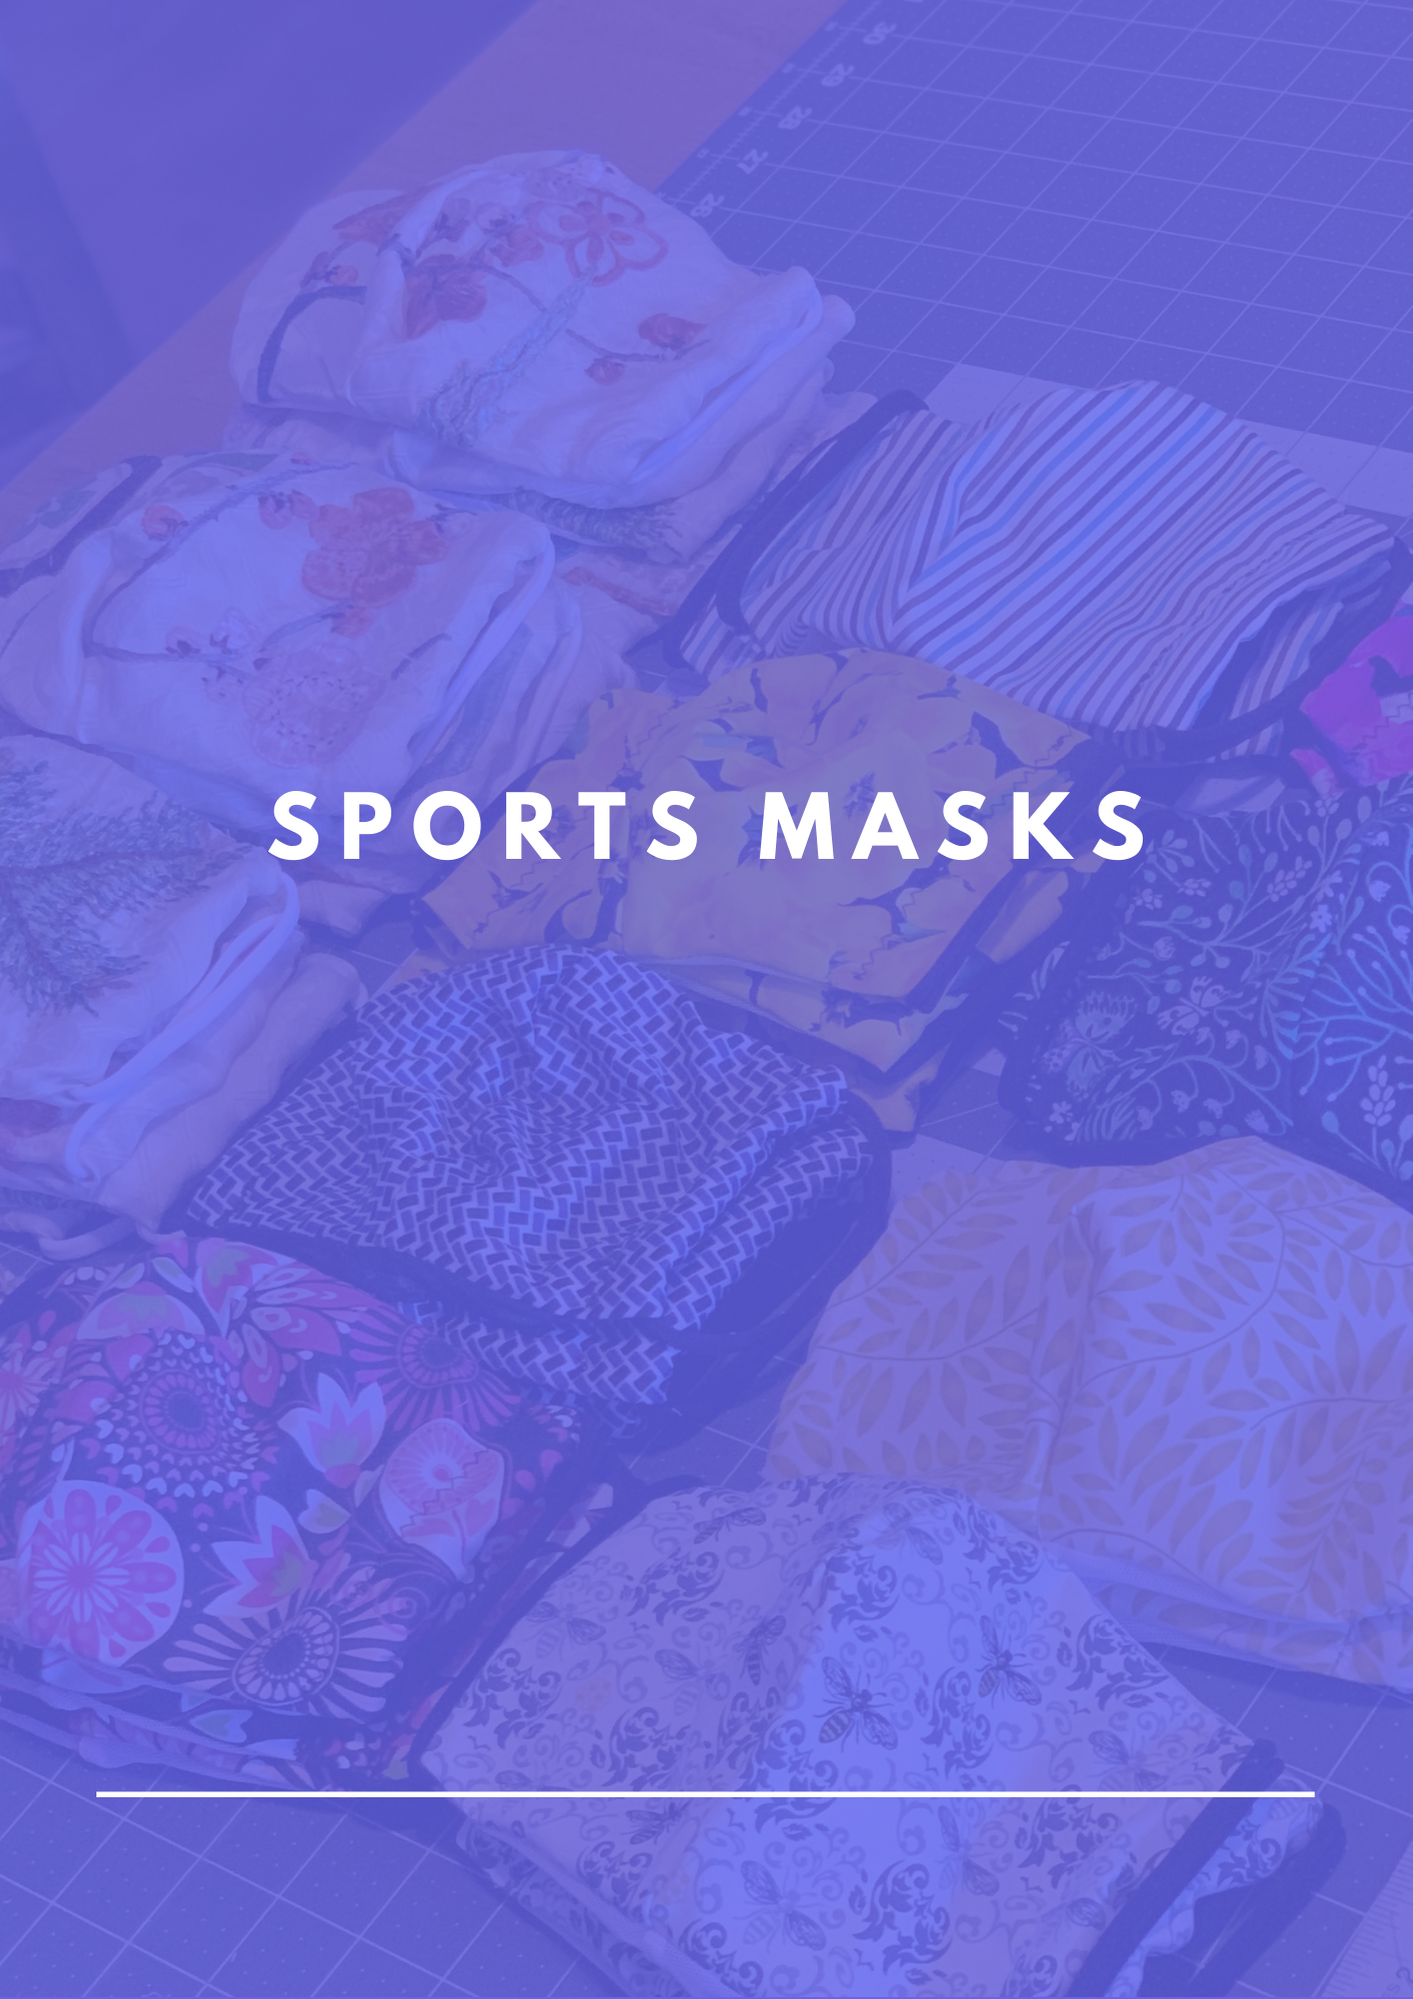 Sports Masks - KDesign Fitness